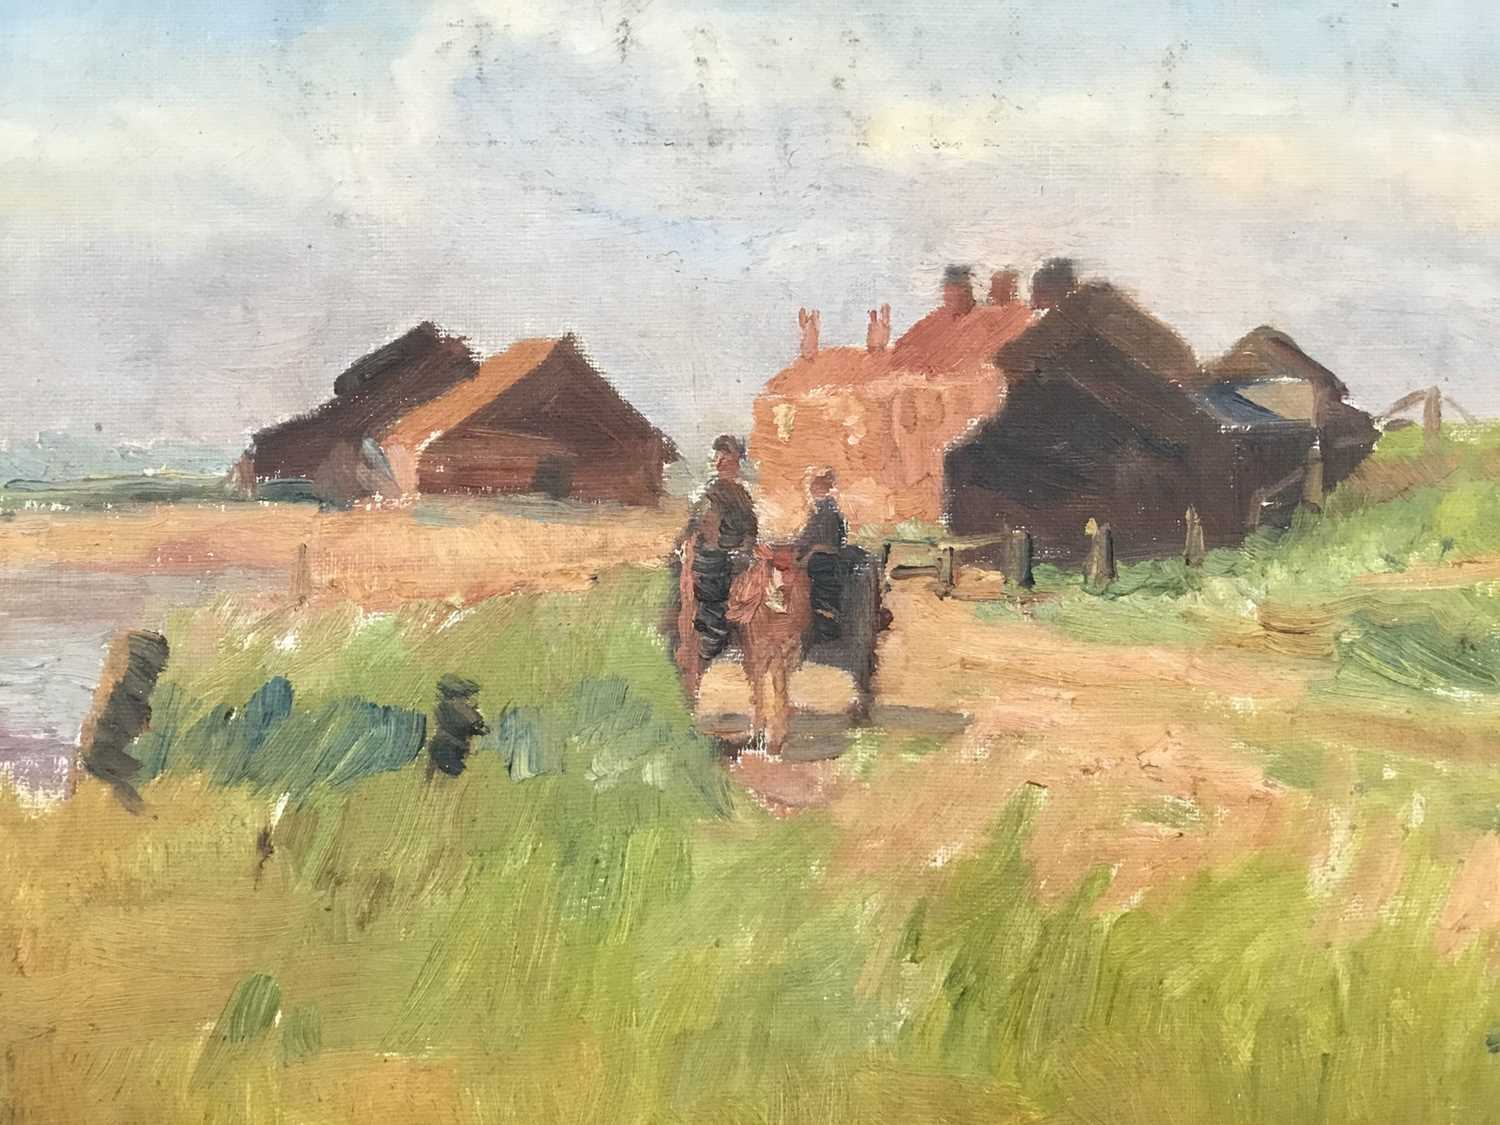 Robert G. D. Alexander (1875-1945) oil on canvas laid on board - Kirby Quay, Essex, with Carters Mil - Image 3 of 9